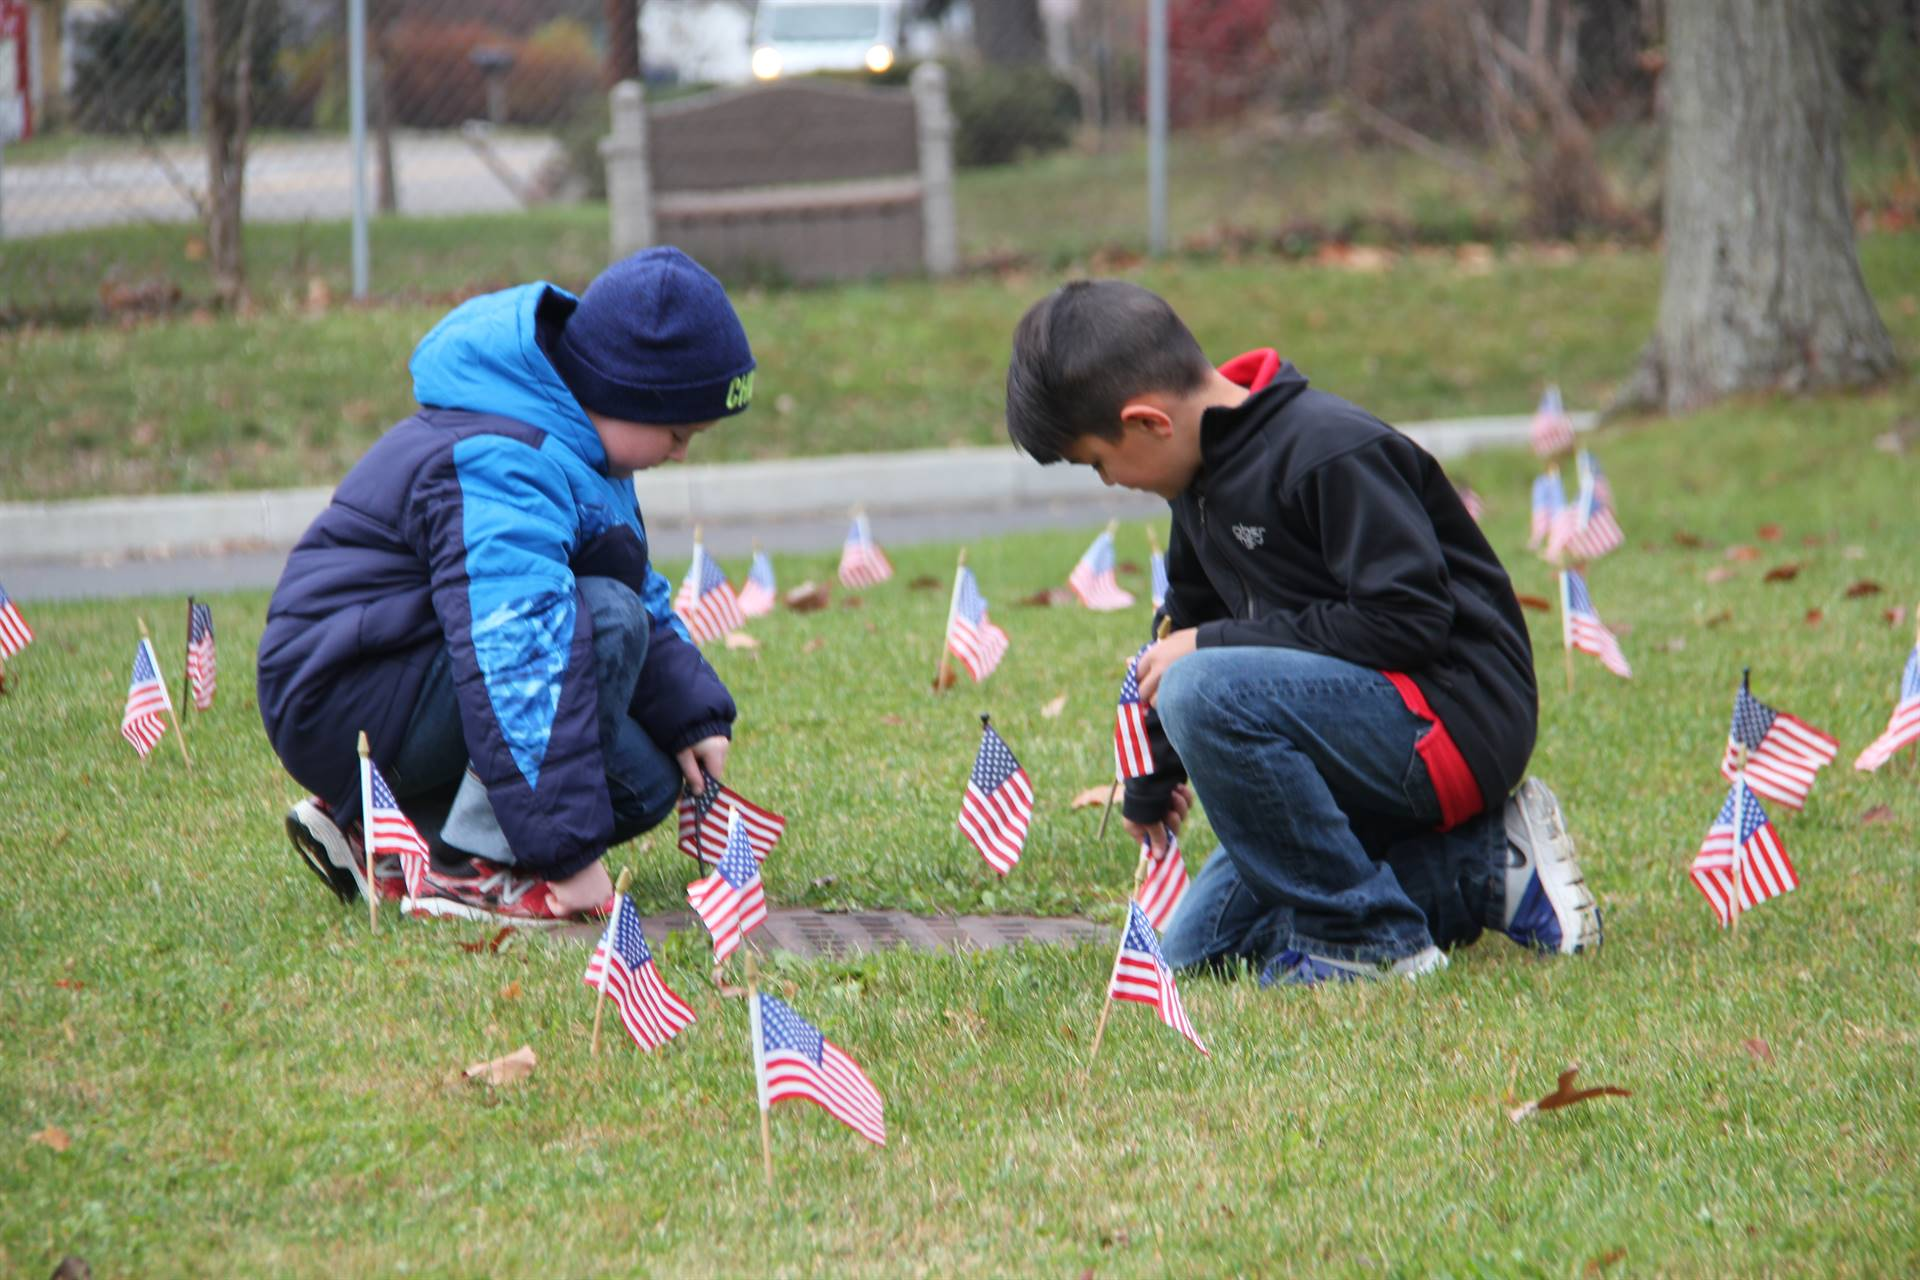 two boys planting american flags in grass